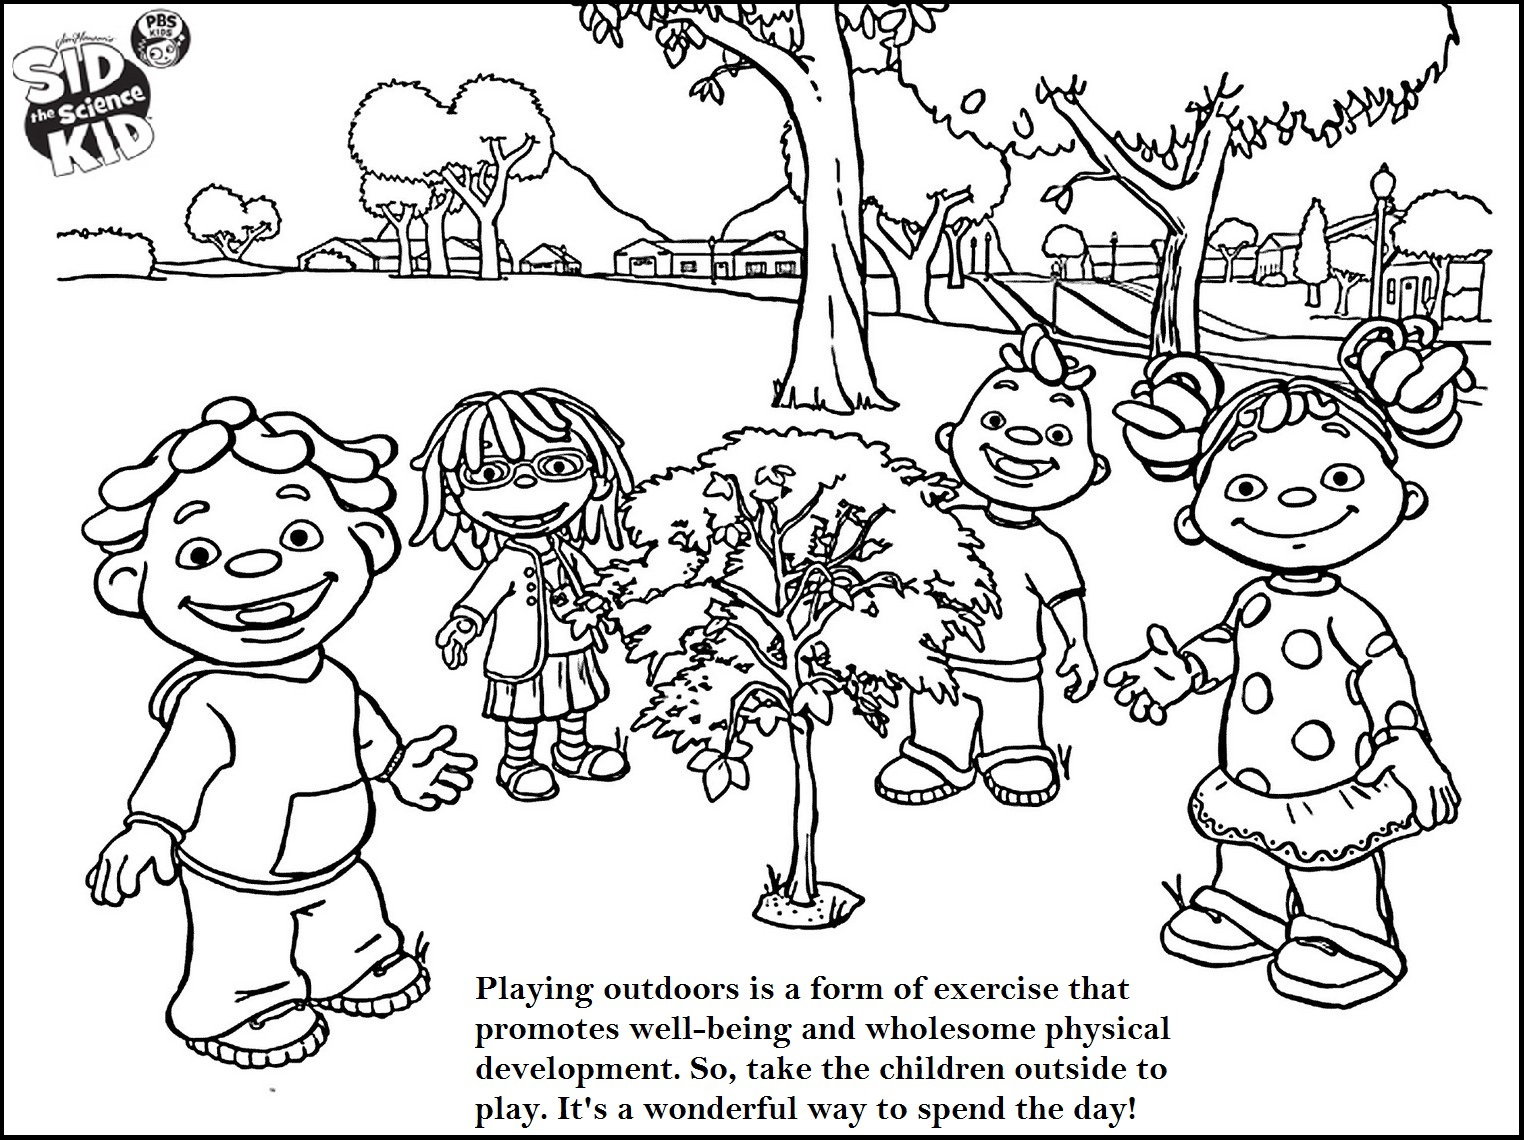 sid the science kid playing outdoor with friends coloring page